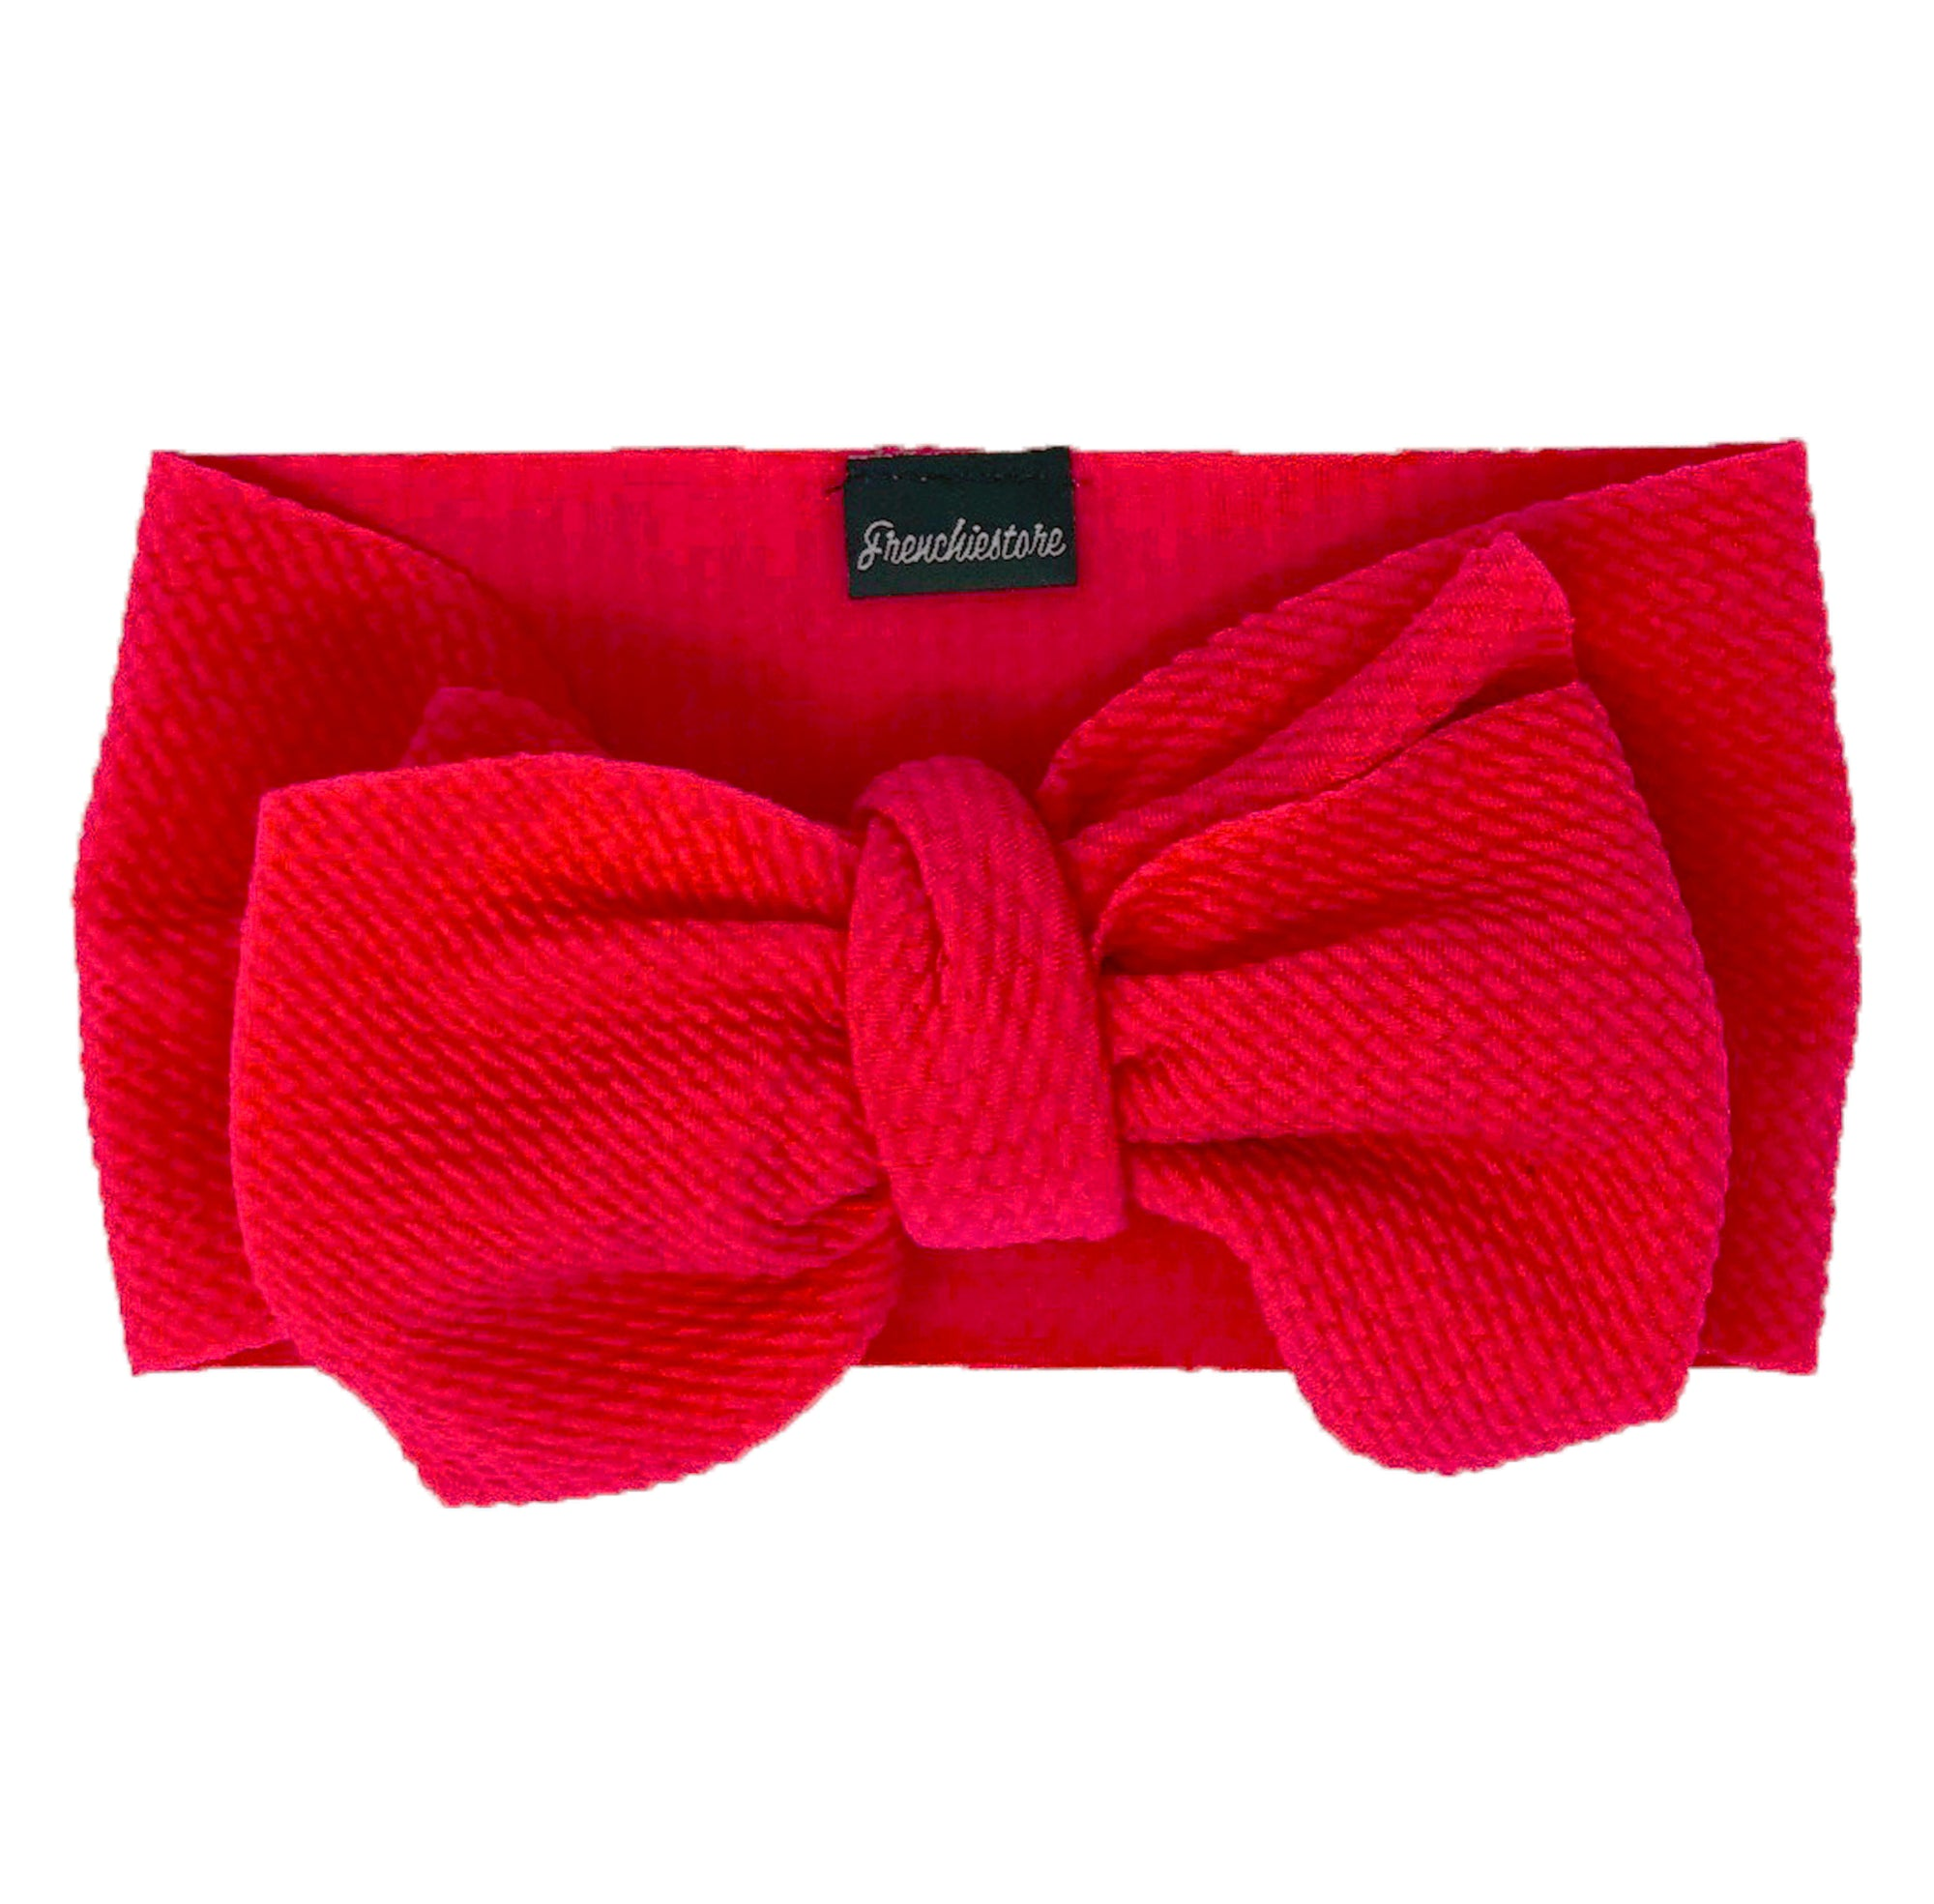 Frenchiestore Pet Head Bow | Rosa caliente